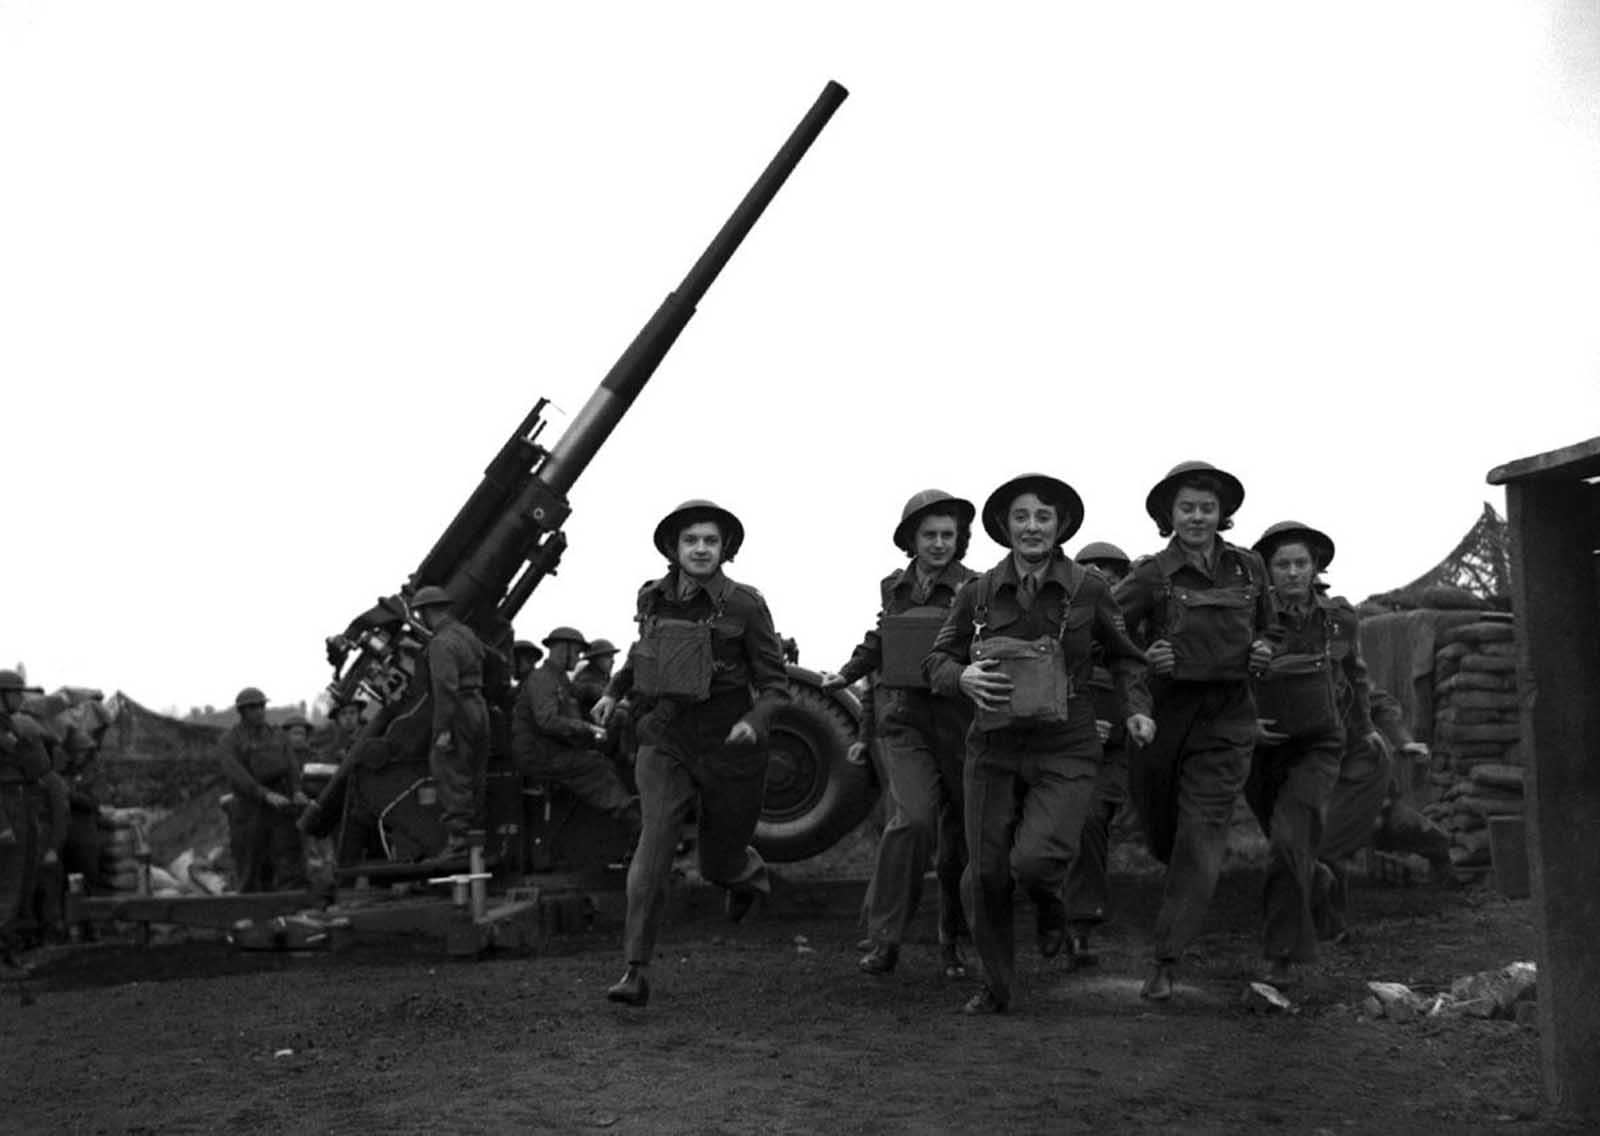 Ack-Ack Girls, members of the Auxiliary Territorial Service (ATS), run to action at an anti-aircraft gun emplacement in the London area on May 20, 1941 when the alarm is sounded.